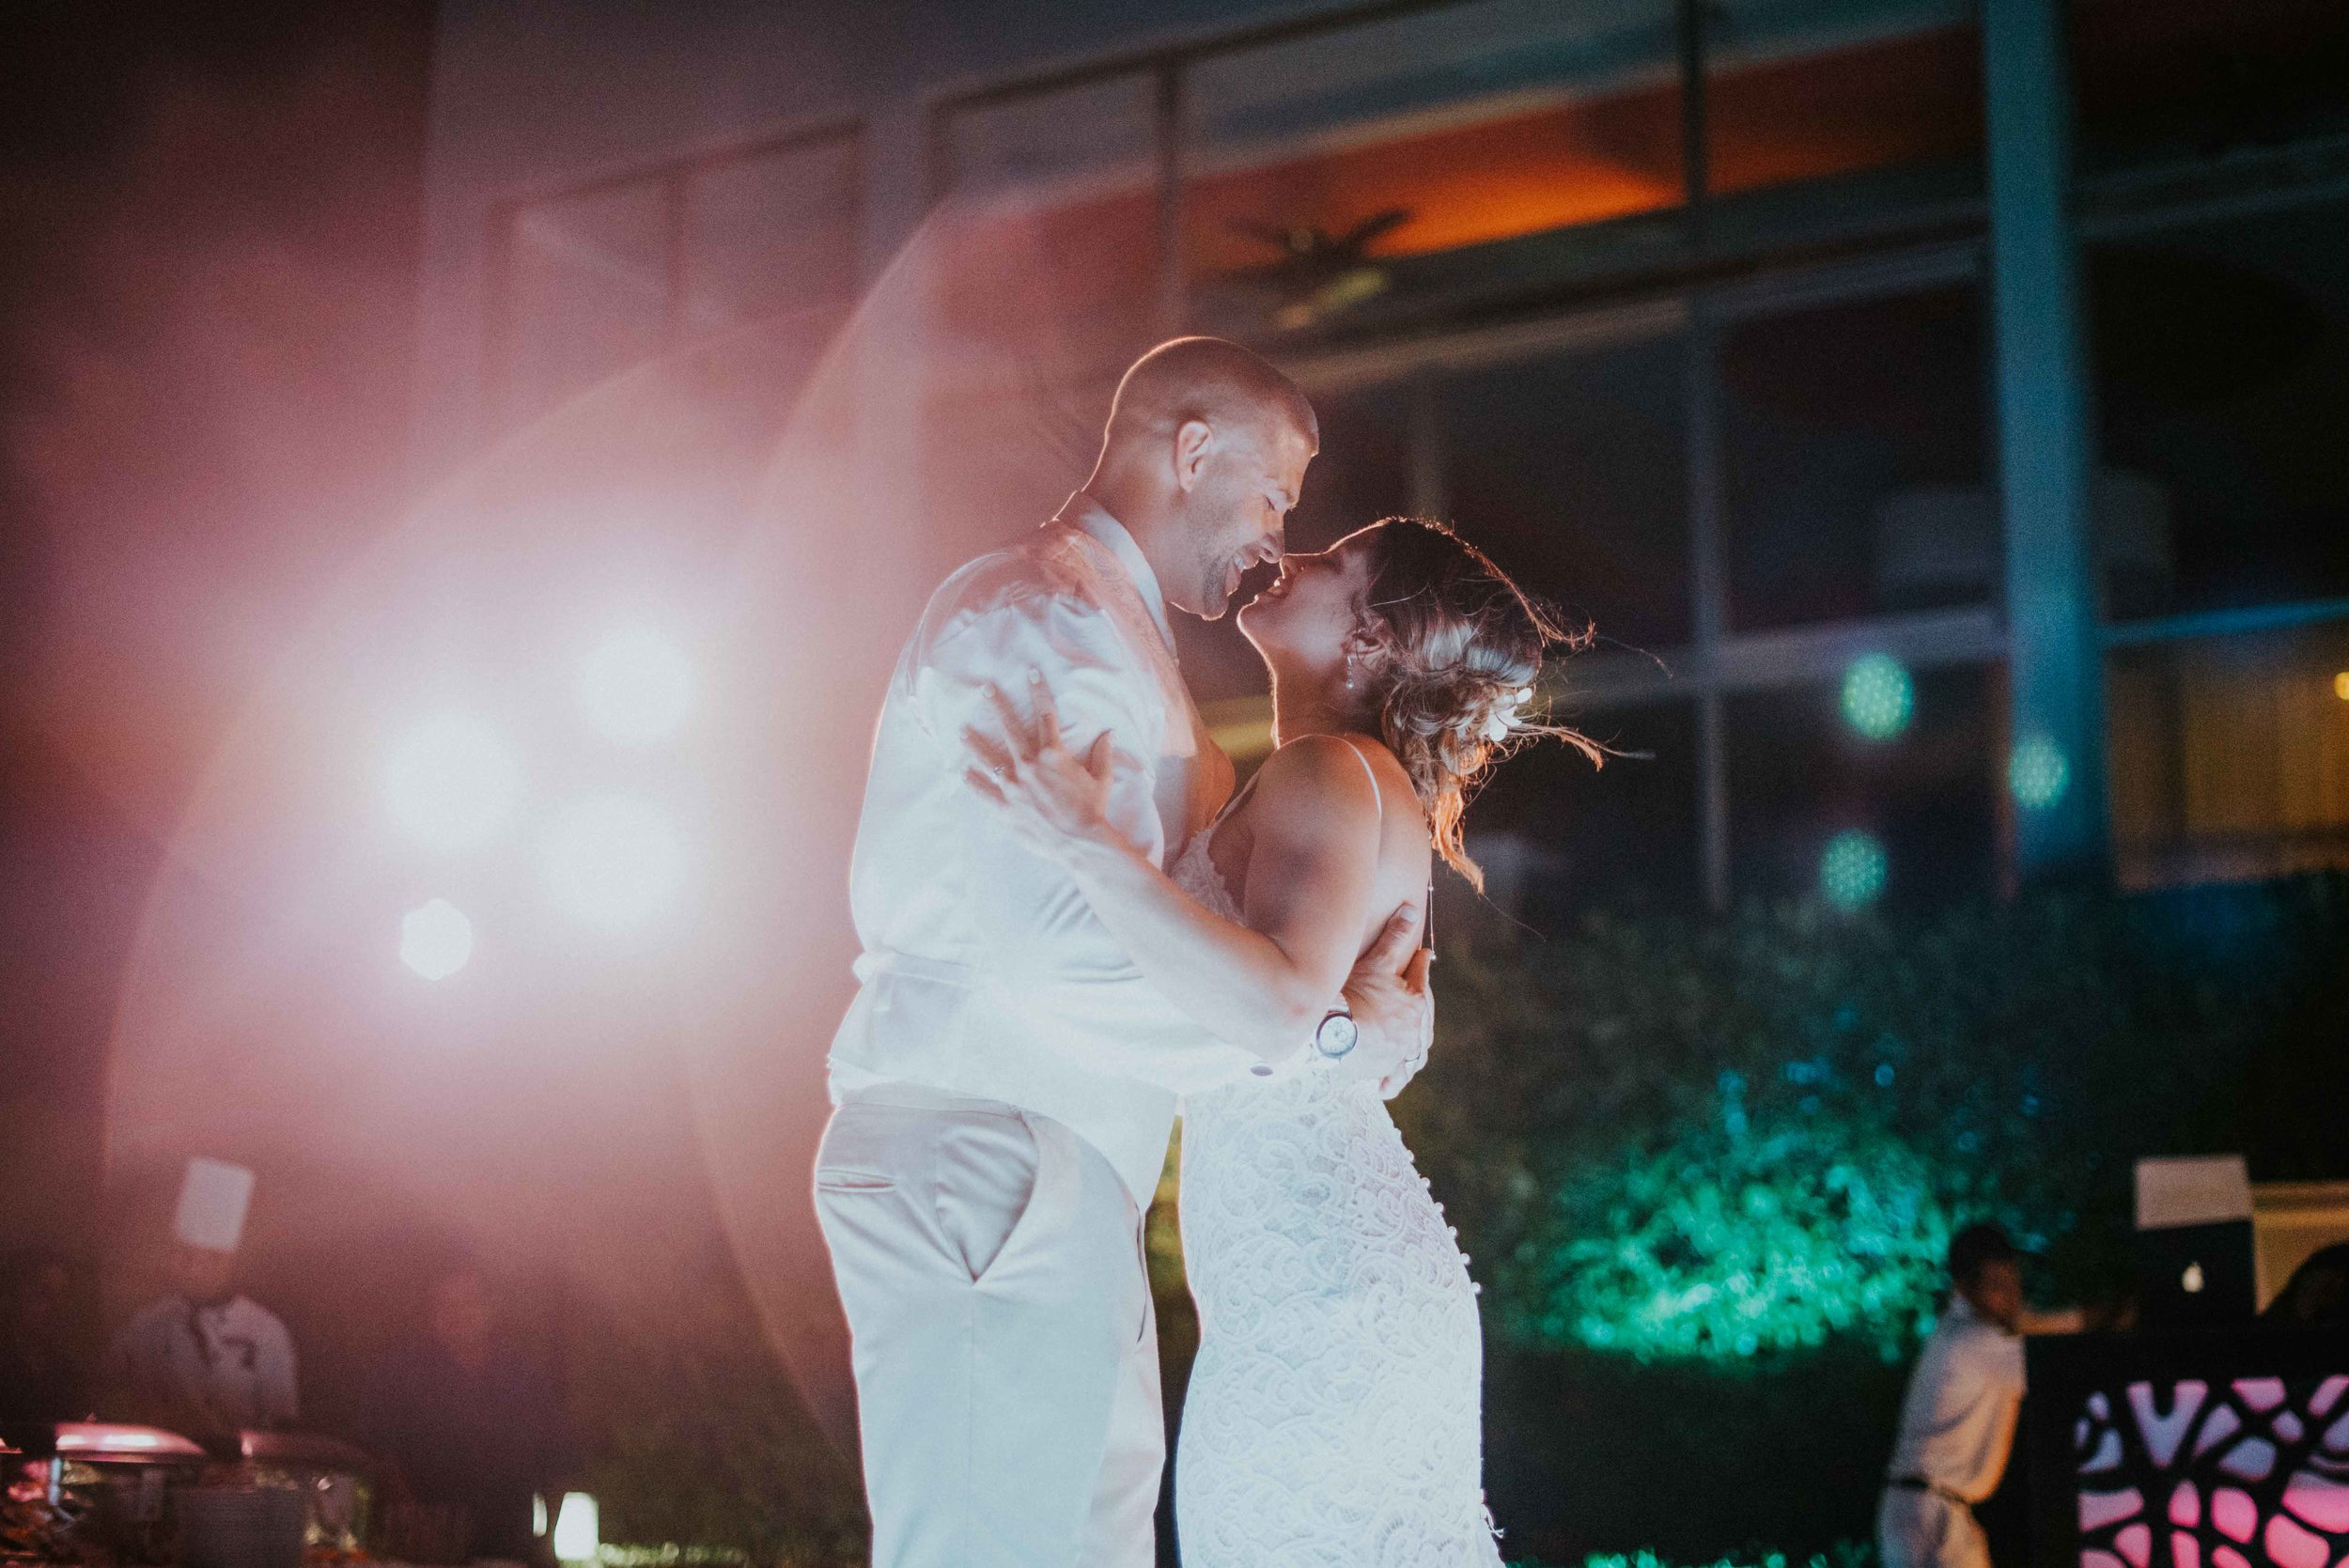 Beach-Wedding-Photography-Cancun-Elopement-Destination-Elopement-Photography-Destination-Beach-Wedding-+Costa-Rica-Wedding-Photography-Beach-Wedding-Photos-teresawoodhull-Cancun-Elopement-Beach-Wedding-+Sunset-Beach-Wedding-Fotografia-de-bodas-Nicoya-Peninsula-Elopement-Photographer-Santa-Teresa-Elopement-Photographer-Adventure-elopement-photographer-Santa-Teresa-Wedding-Photographer-Adventure-Wedding-Boda-playa-santa-teresa-Adventure-Wedding-Photography-Adventure-Wedding-Photographer-Beach-Elopement-Beach-Elopement-Photos-maddie-mae-Beach-Elopement-Photographer-Destination-Elopement-Photographer-Sunset-Beach-Elopement-Mexico-wedding-photographer-cabo-wedding-photographer-mexico-wedding-mexico-destination-wedding-cancun-destination-wedding-cancun-elopement-photographer-playa-del-carmen-wedding-playa-del-carmen-destination-wedding-photographer-playa-del-carmen-wedding-photography-Nicoya-Peninsula-Wedding-Photography-Nicoya-Peninsula-Wedding-Photographer-Nicoya-Peninsula-Elopement-Photography-julia-tony-first-dance-017